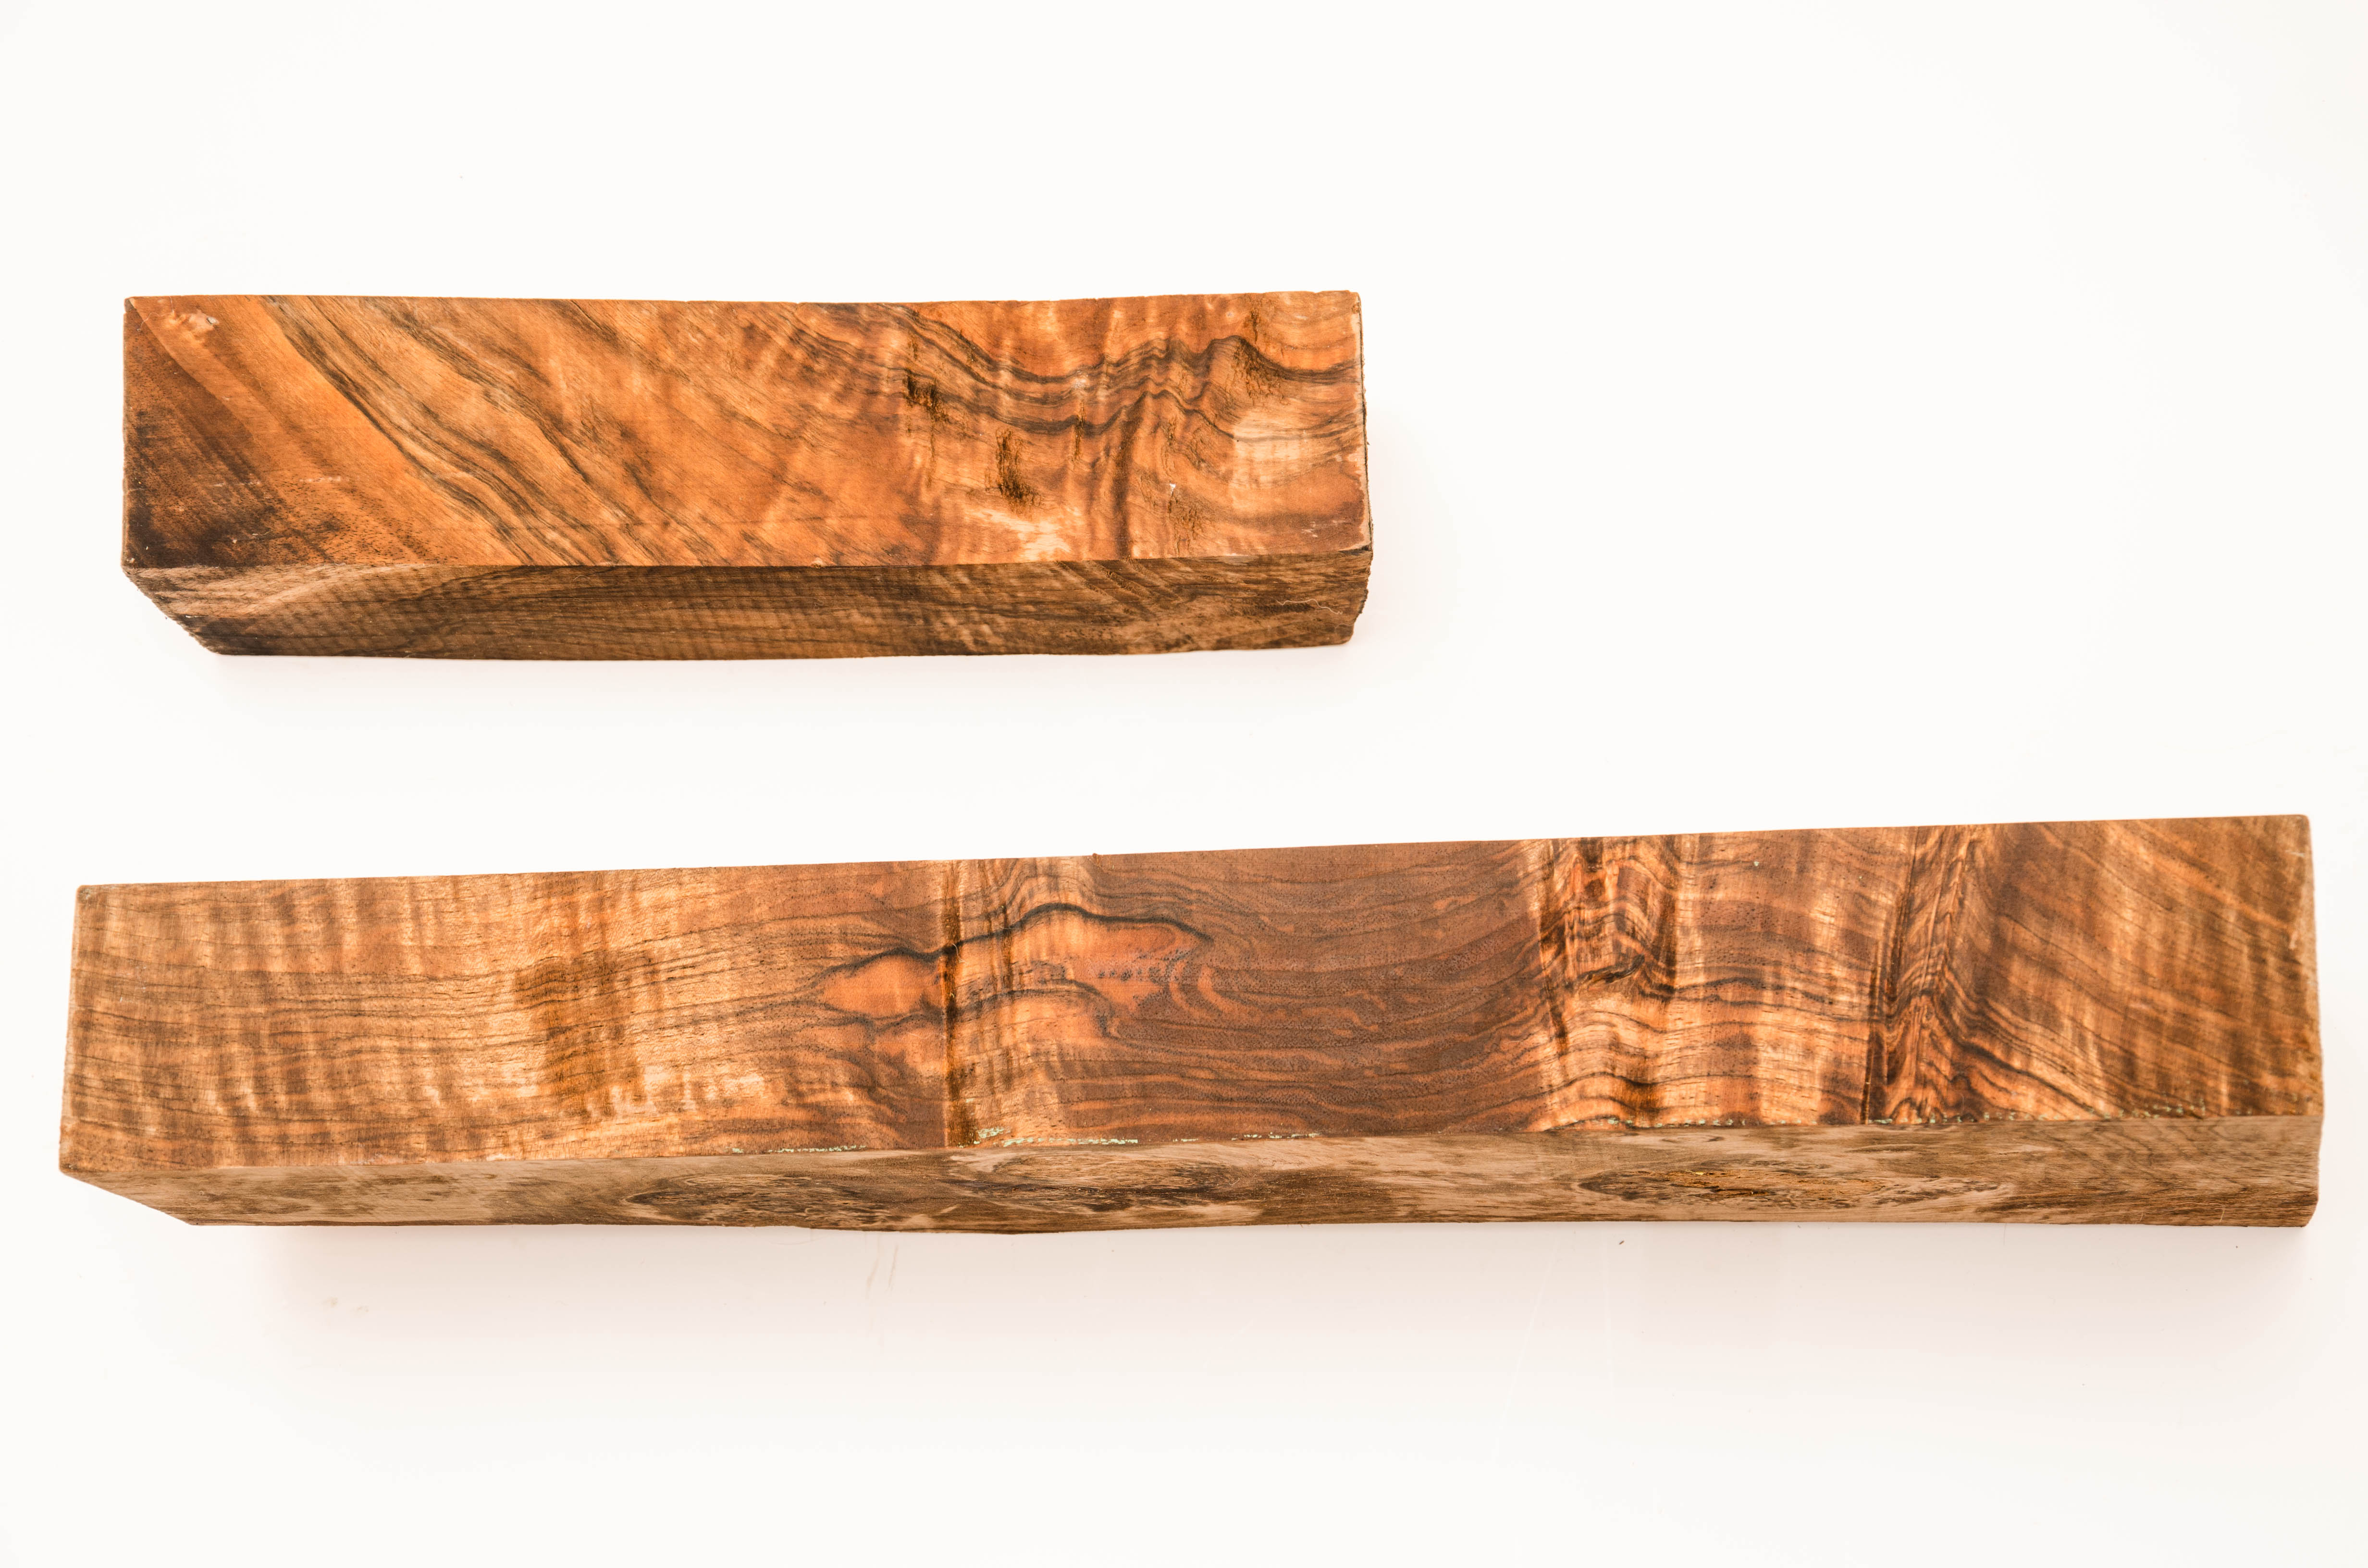 walnut_stock_blanks_for_guns_and_rifles-0359